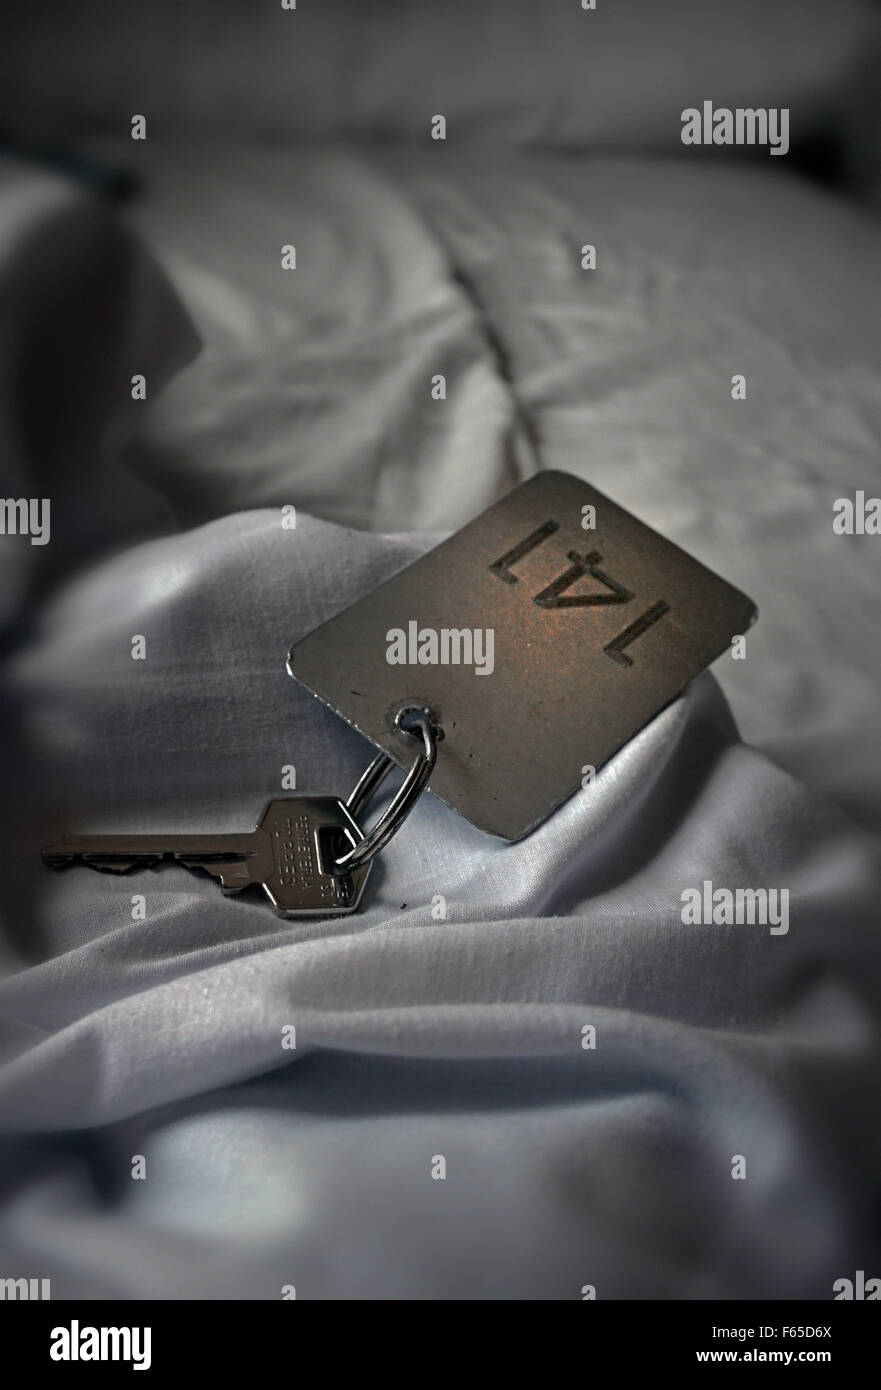 hotel door key - Stock Image